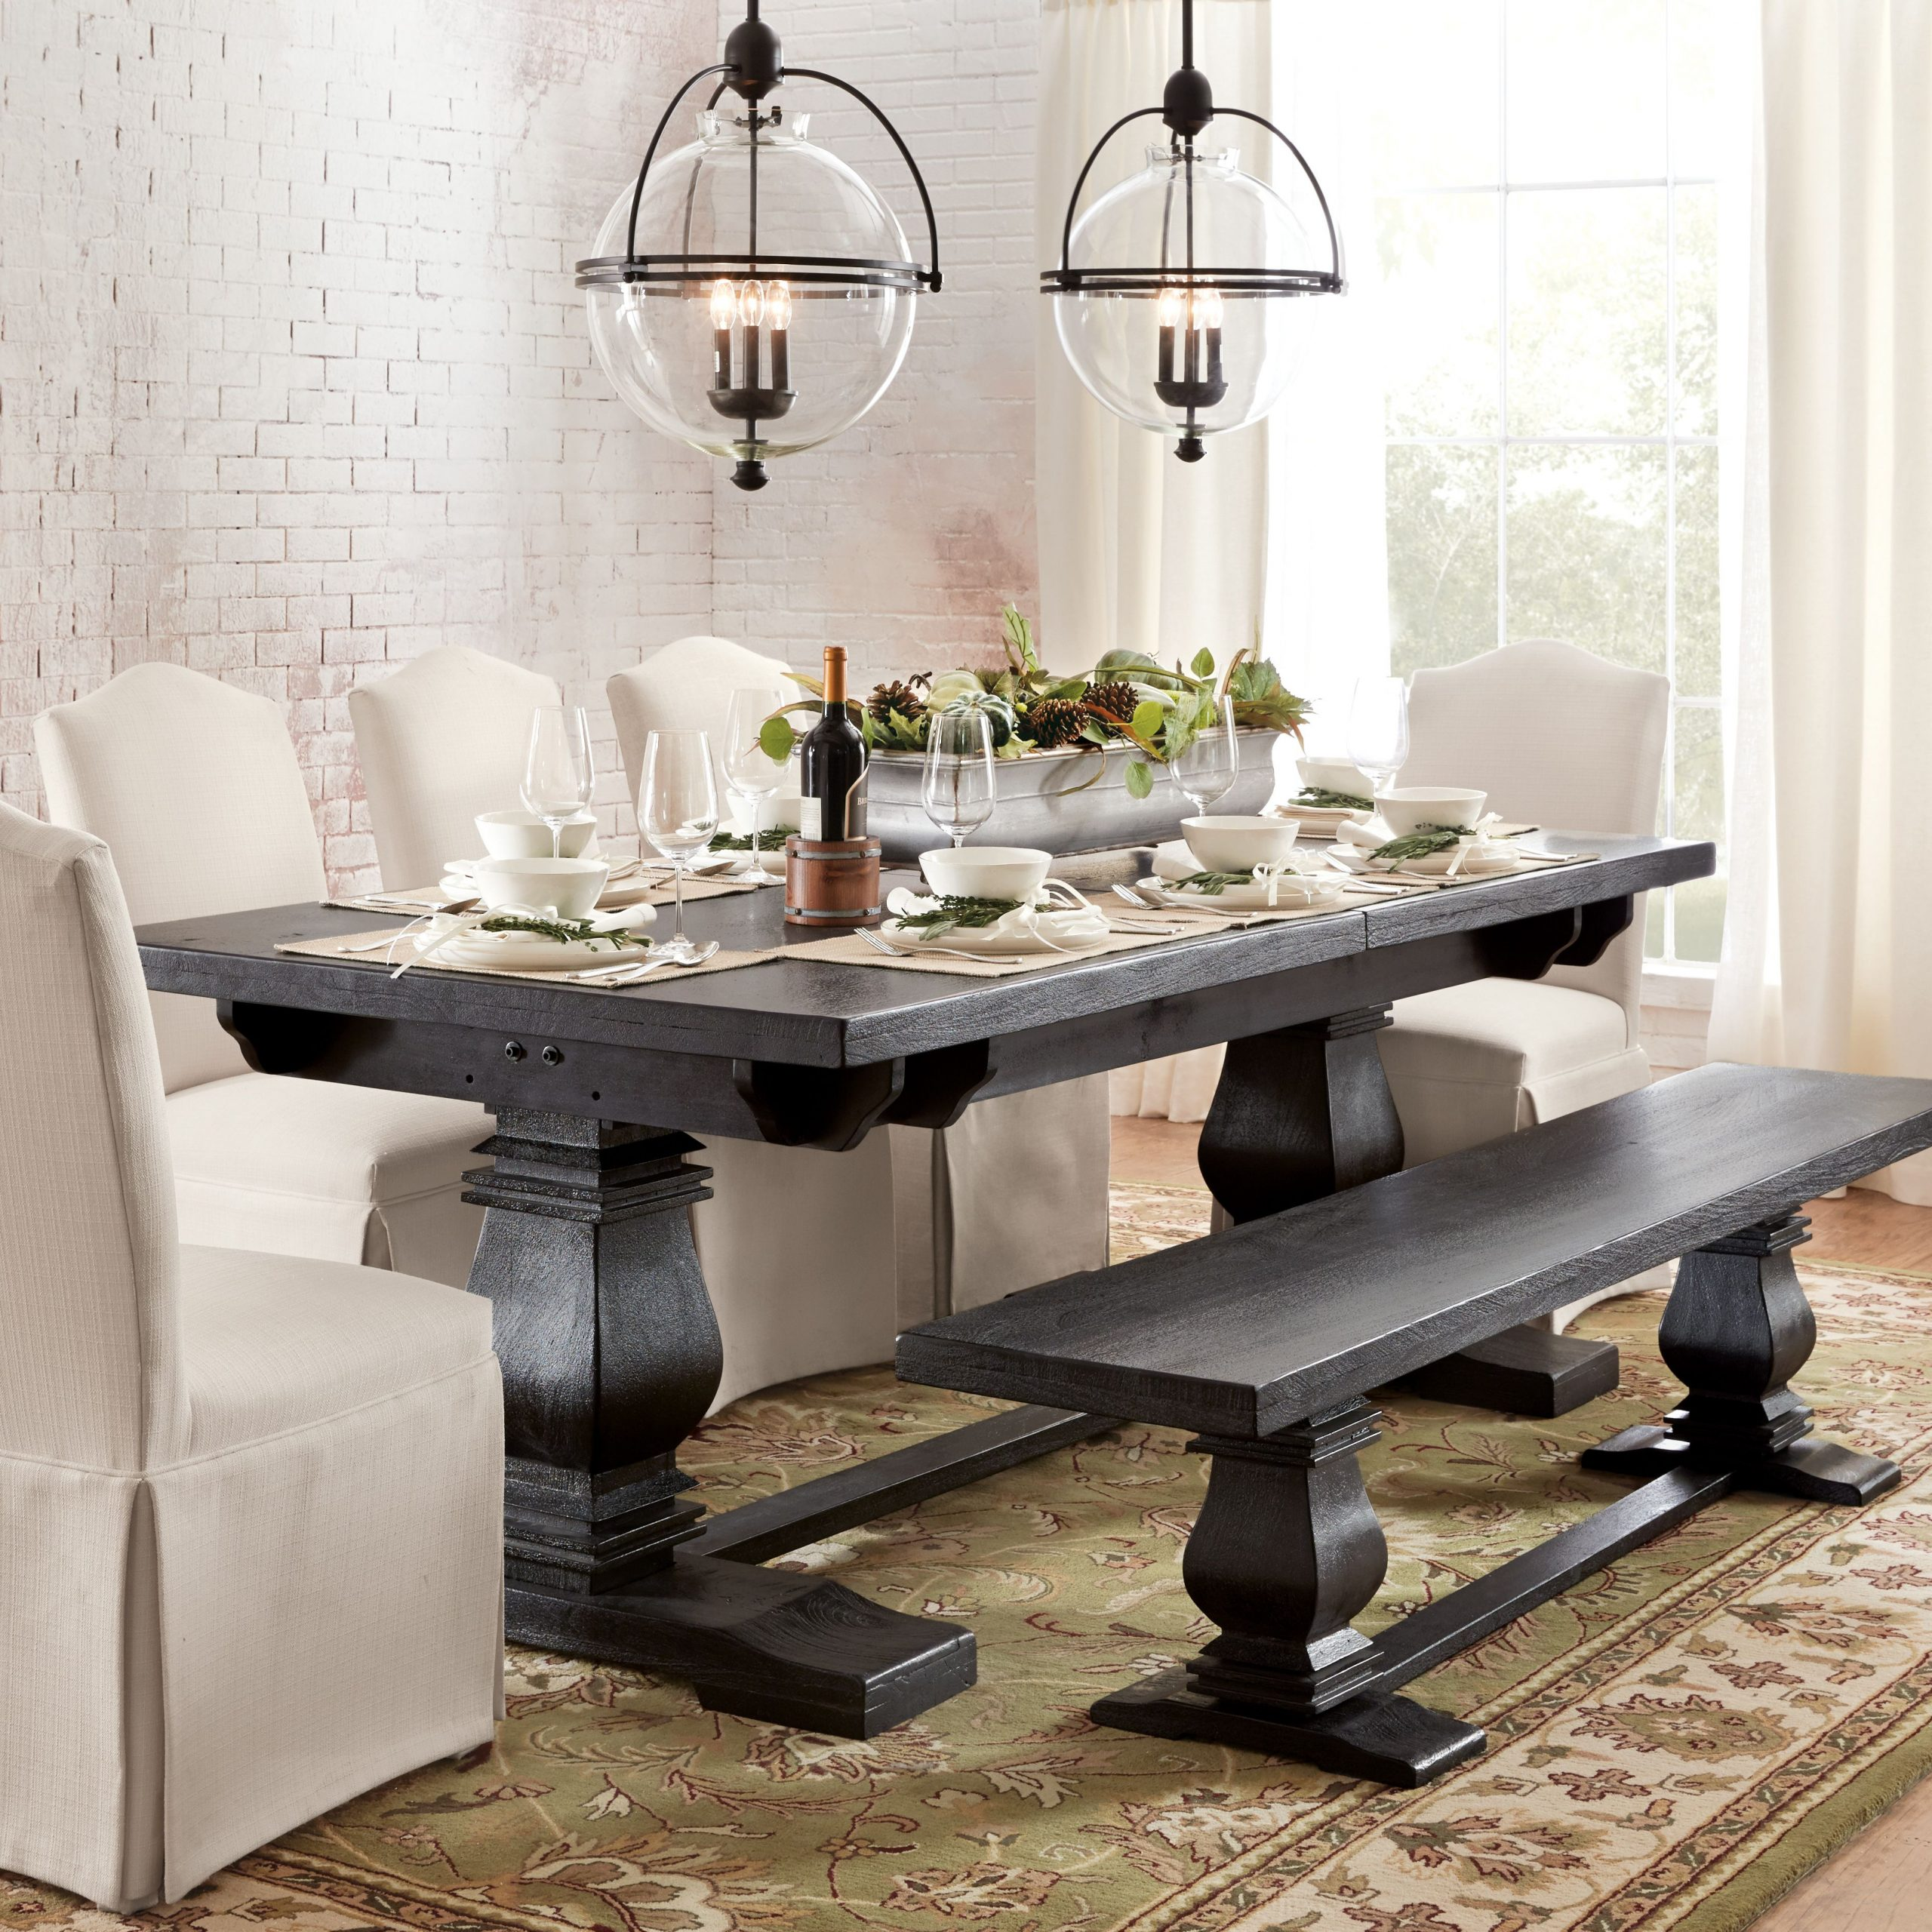 Aldridge Antique Grey Extendable Dining Table | Townhouse With Regard To Most Popular Black Wash Banks Extending Dining Tables (View 5 of 25)